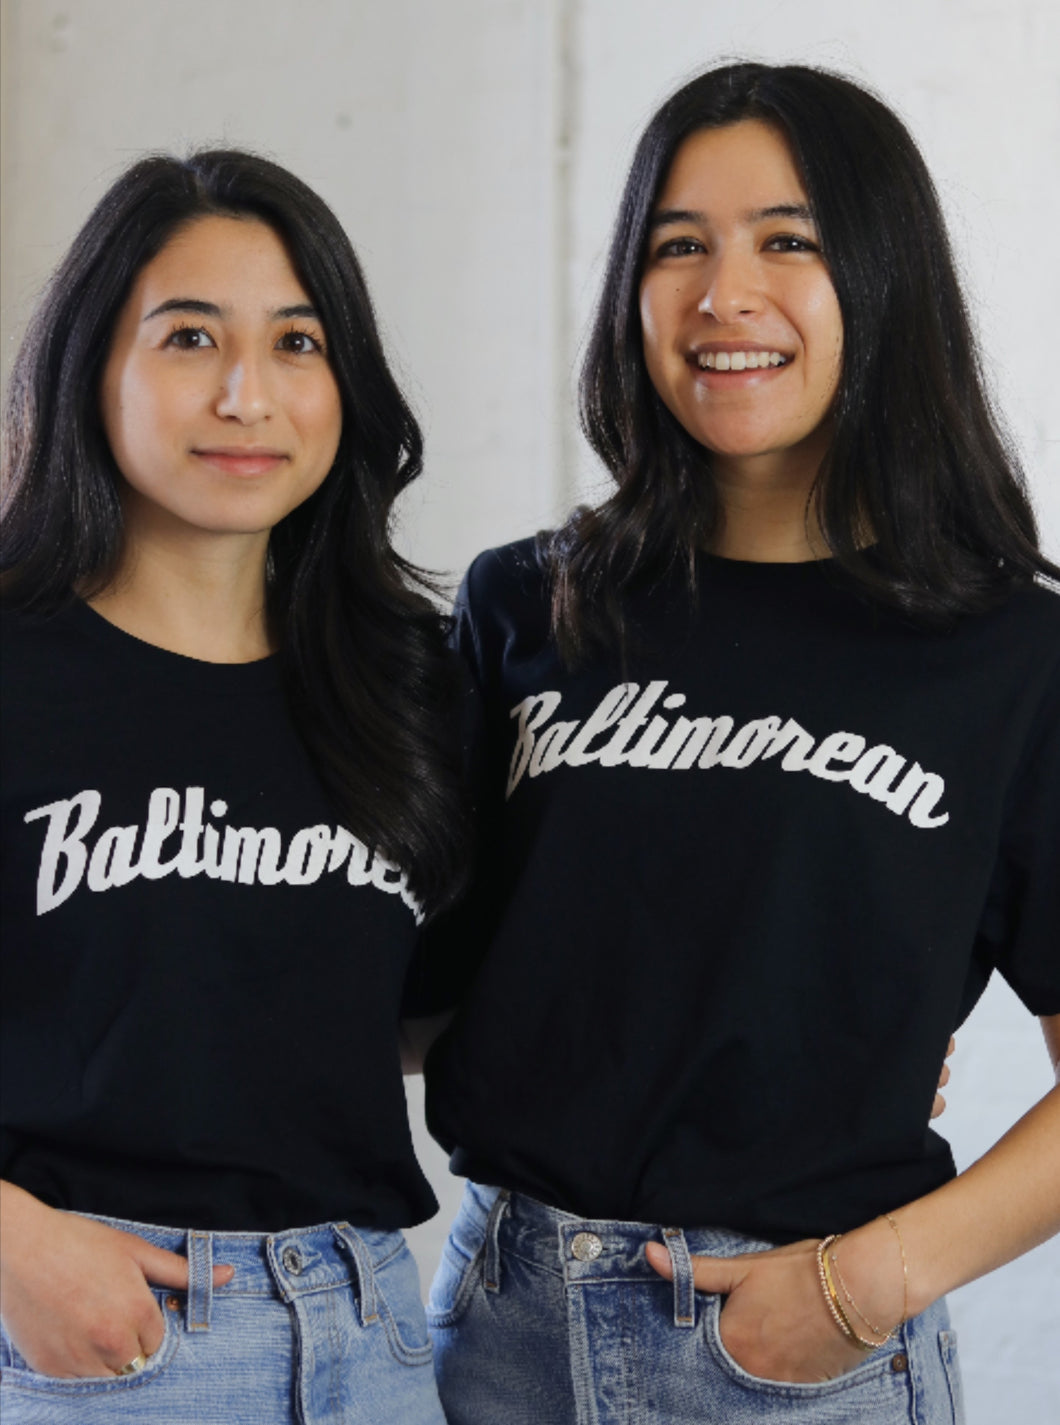 Baltimorean T-Shirt